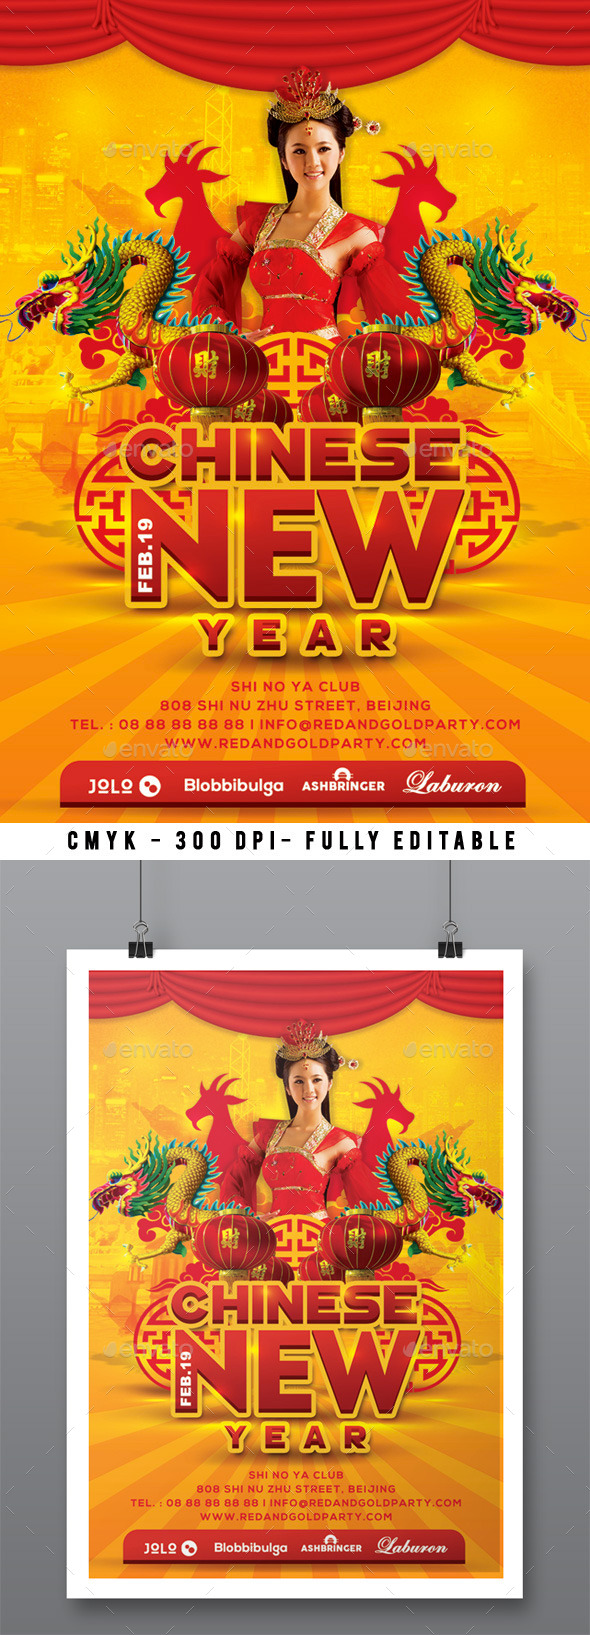 Gold And Red Chinese New Year 2015 Celebration - Events Flyers